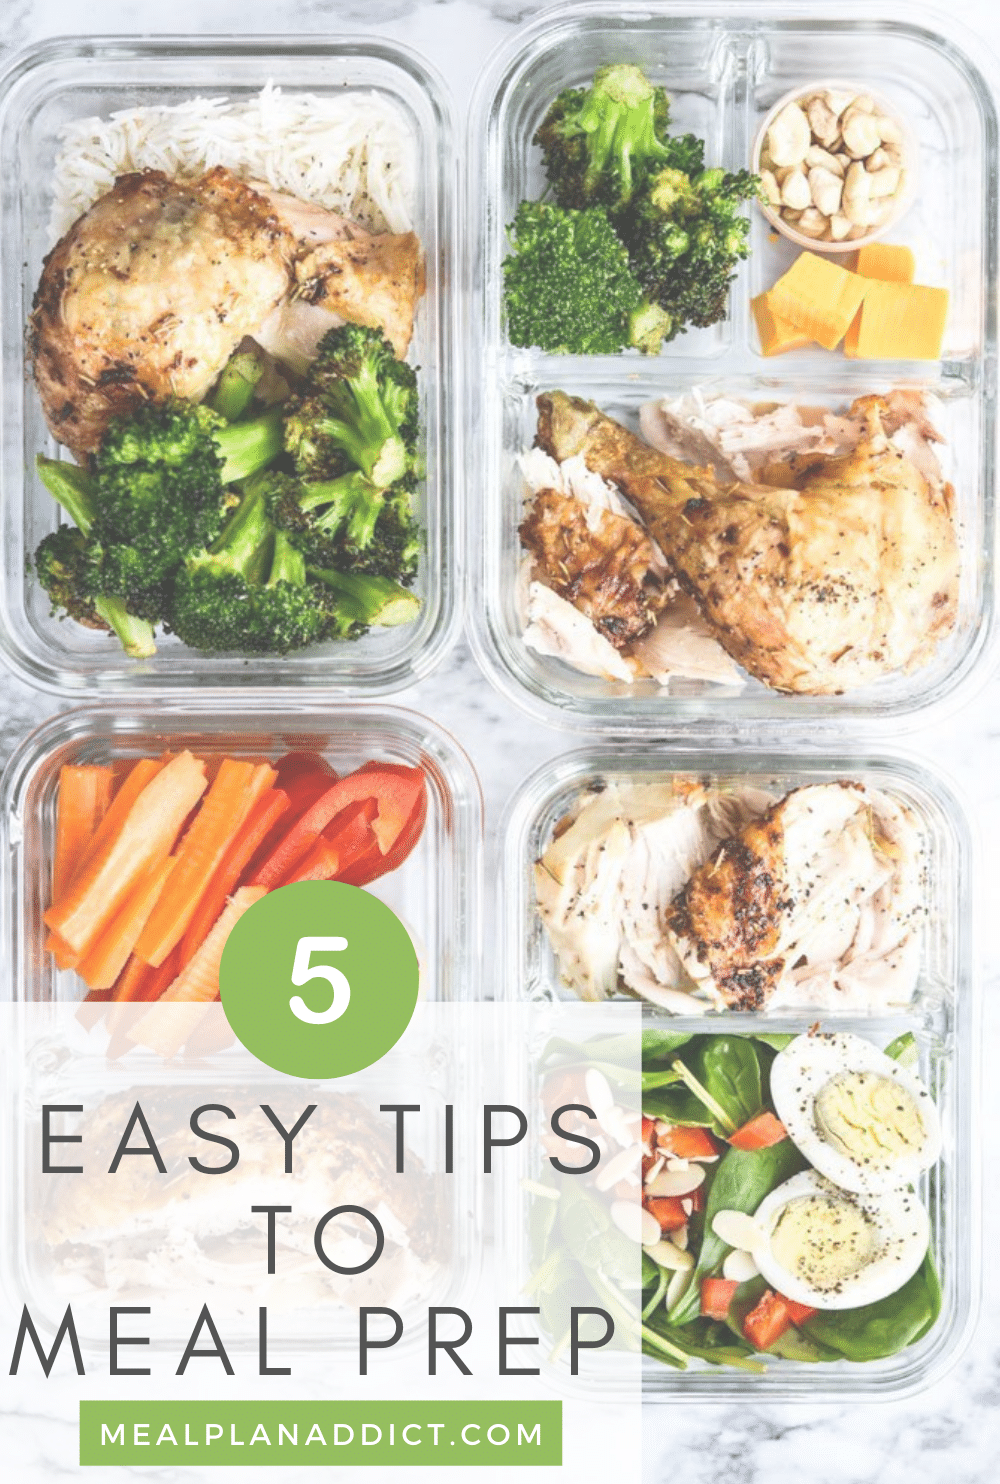 5 Easy Tips to Meal Prepping | Meal Plan Addict